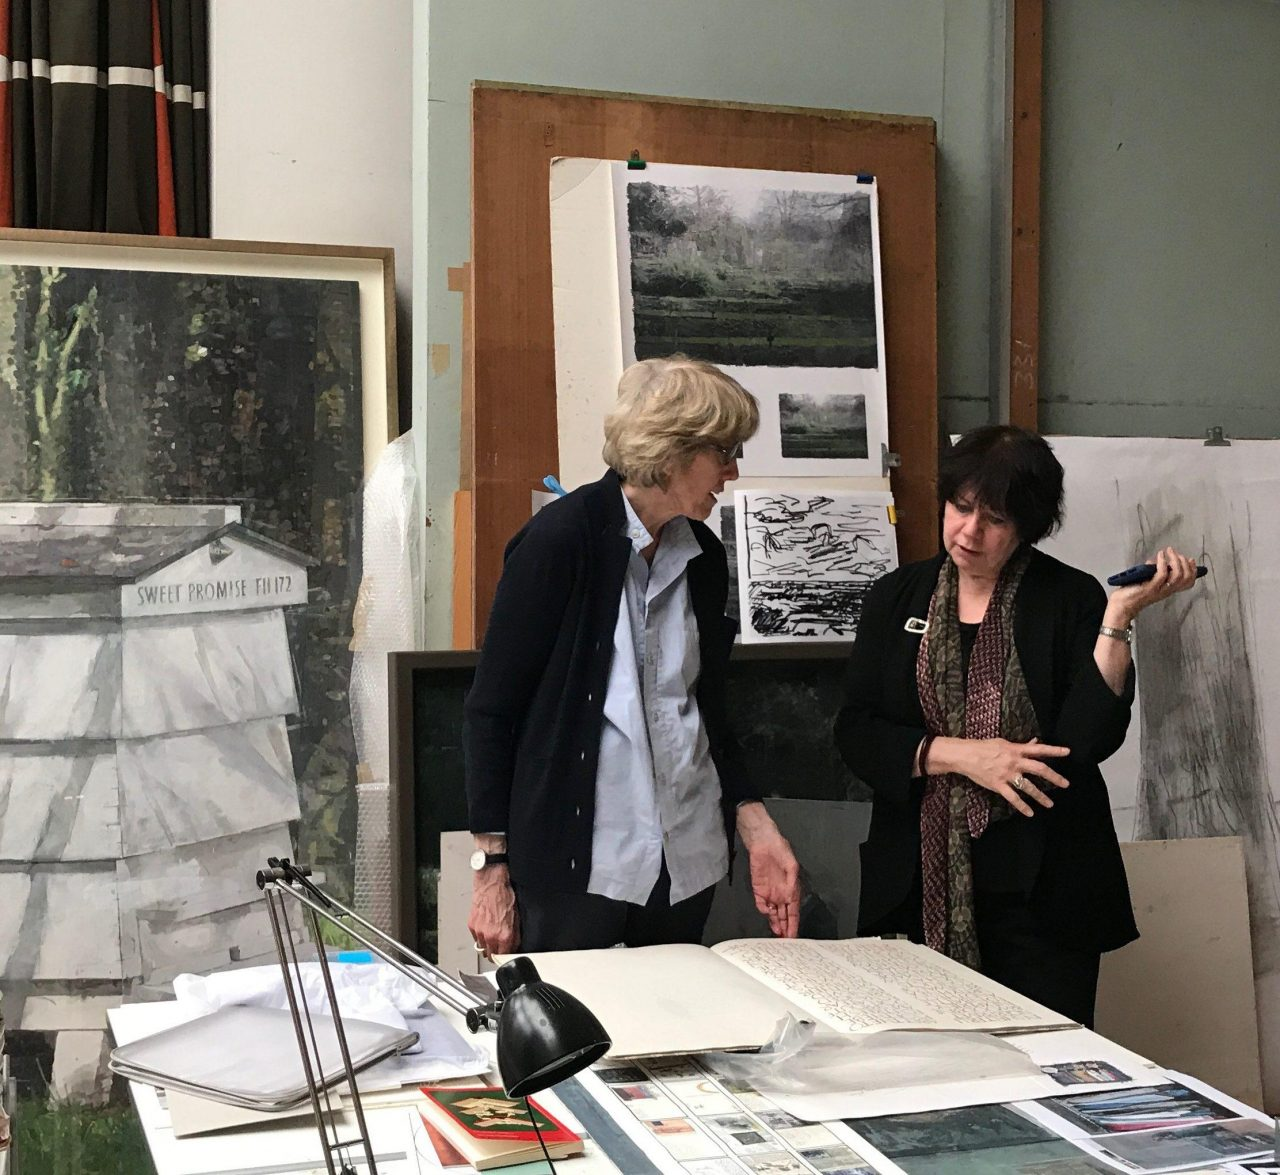 Eileen Hogan (left) discussing her work with Elisabeth Fairman (right) in the artist's London studio (Credit: Sarah Davidowitz)